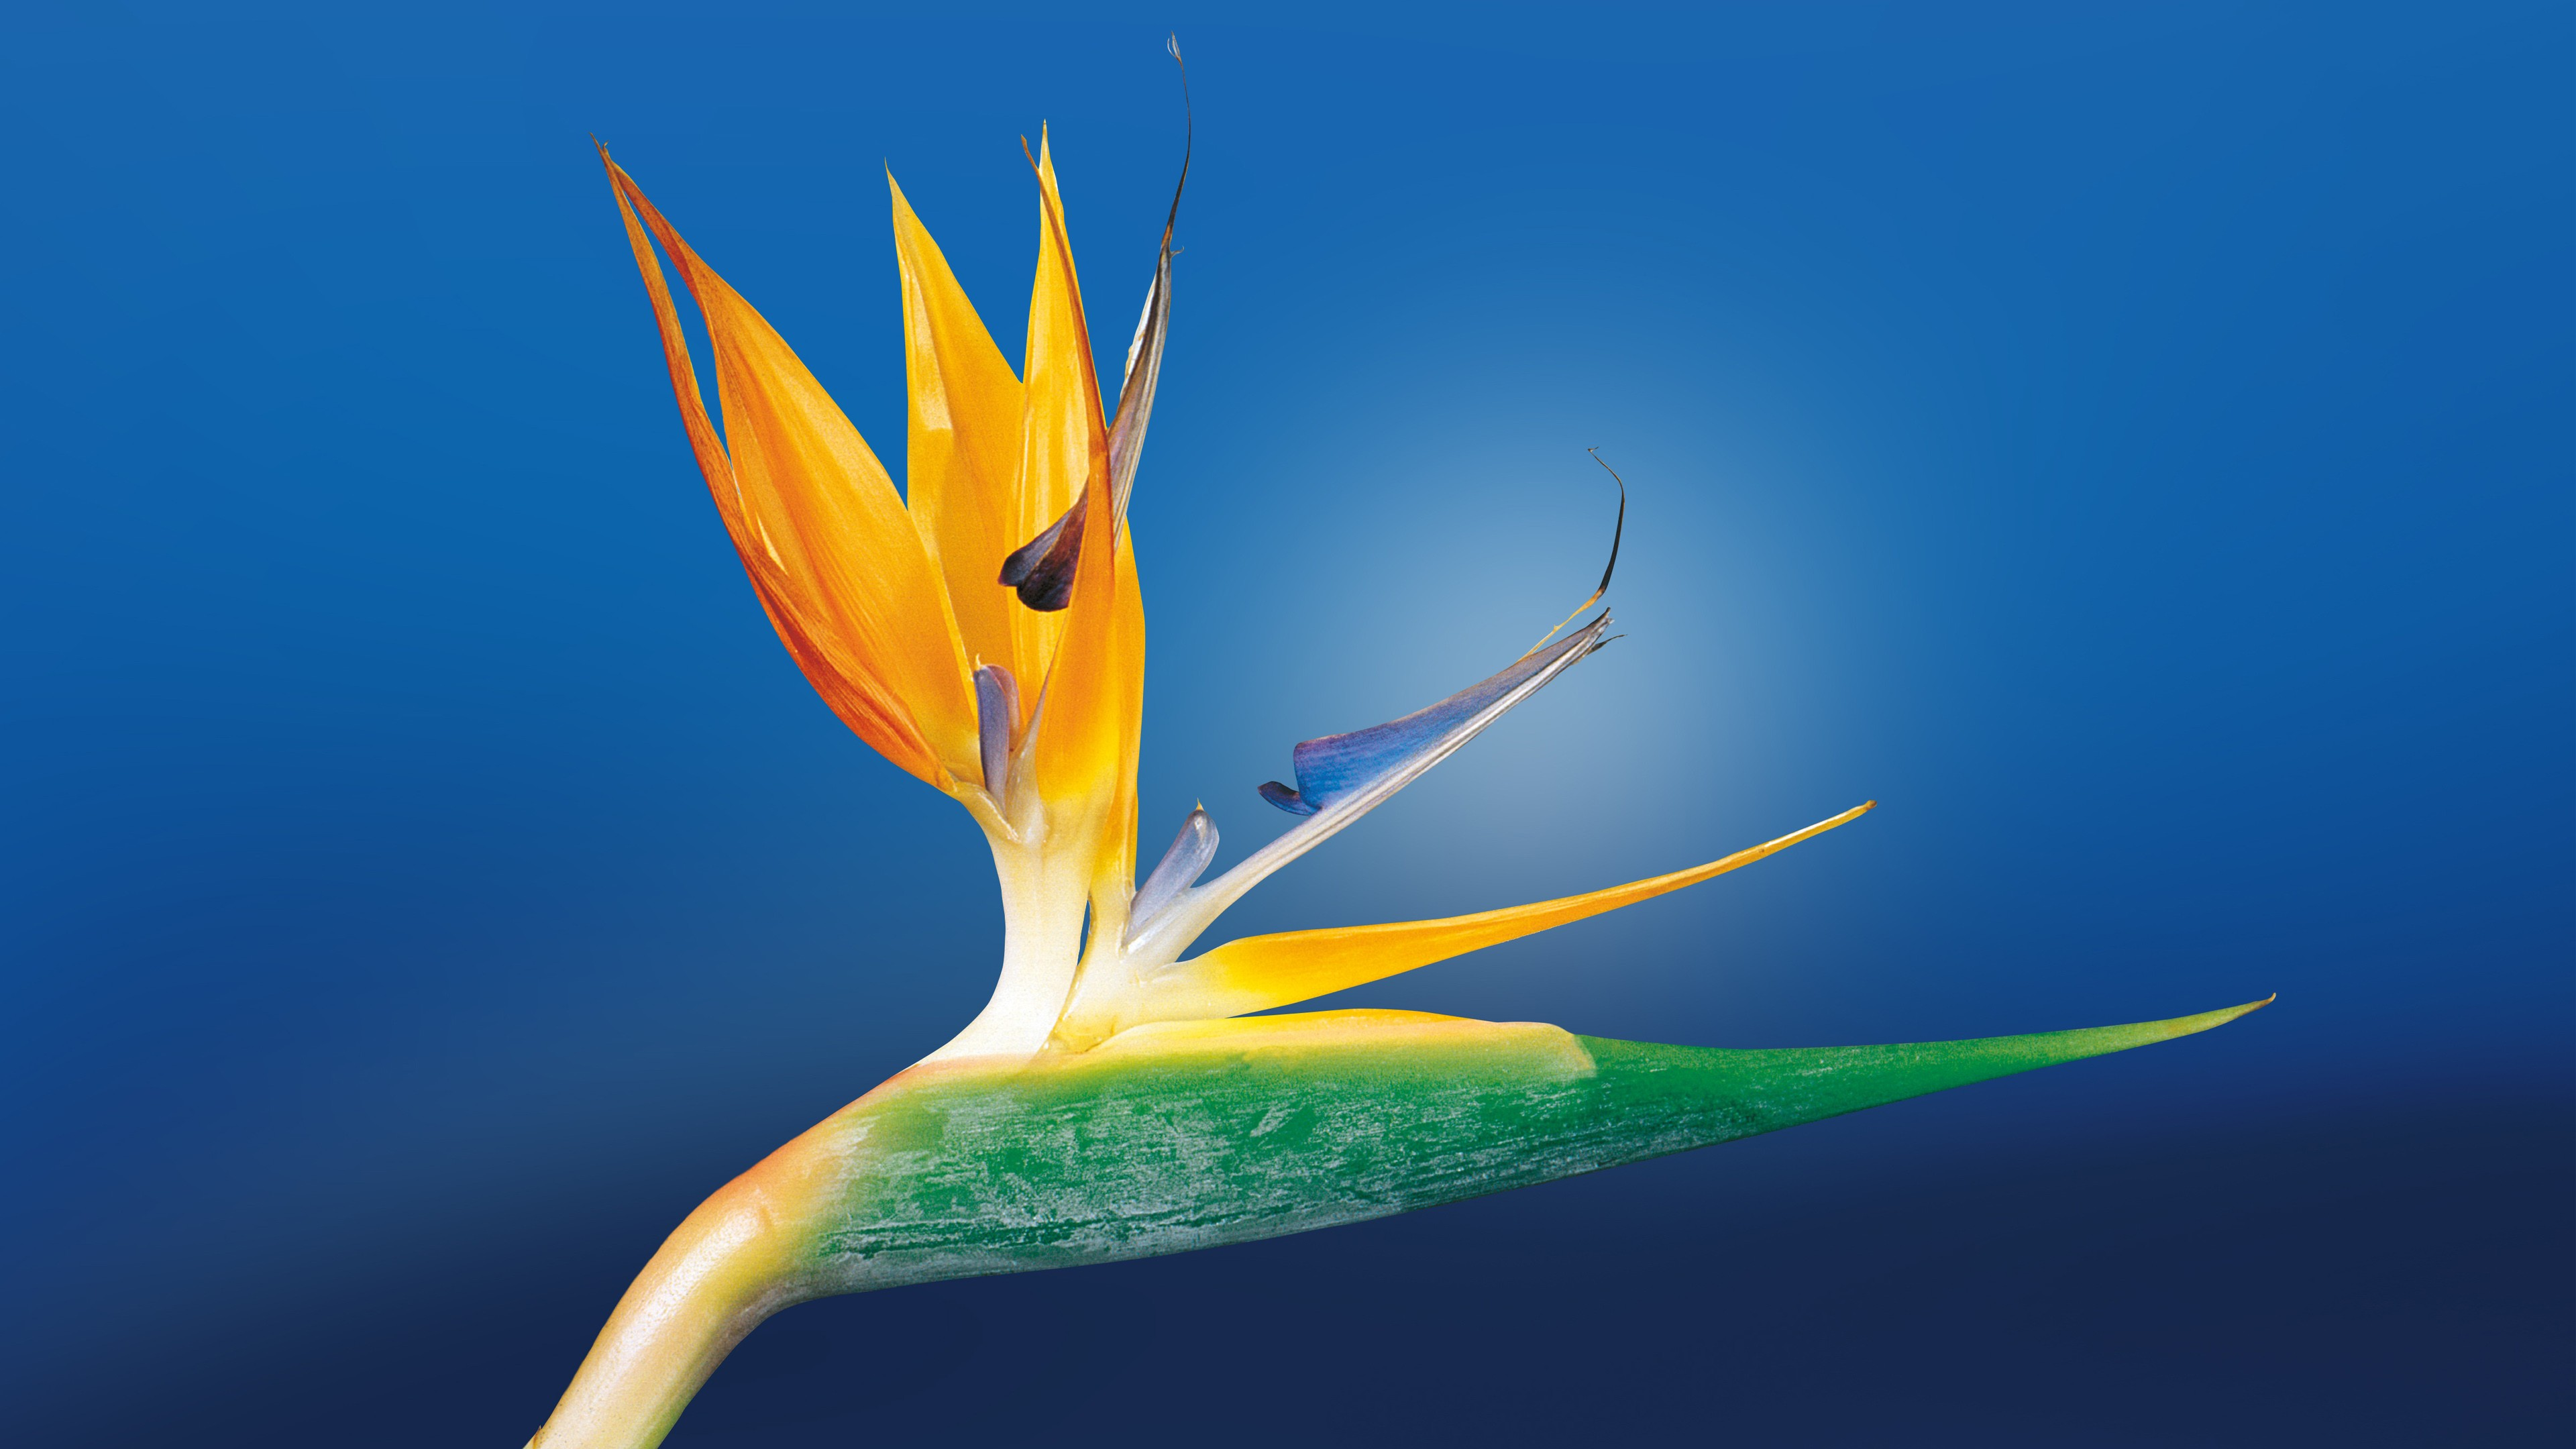 bird of paradise hd flowers 4k wallpapers images